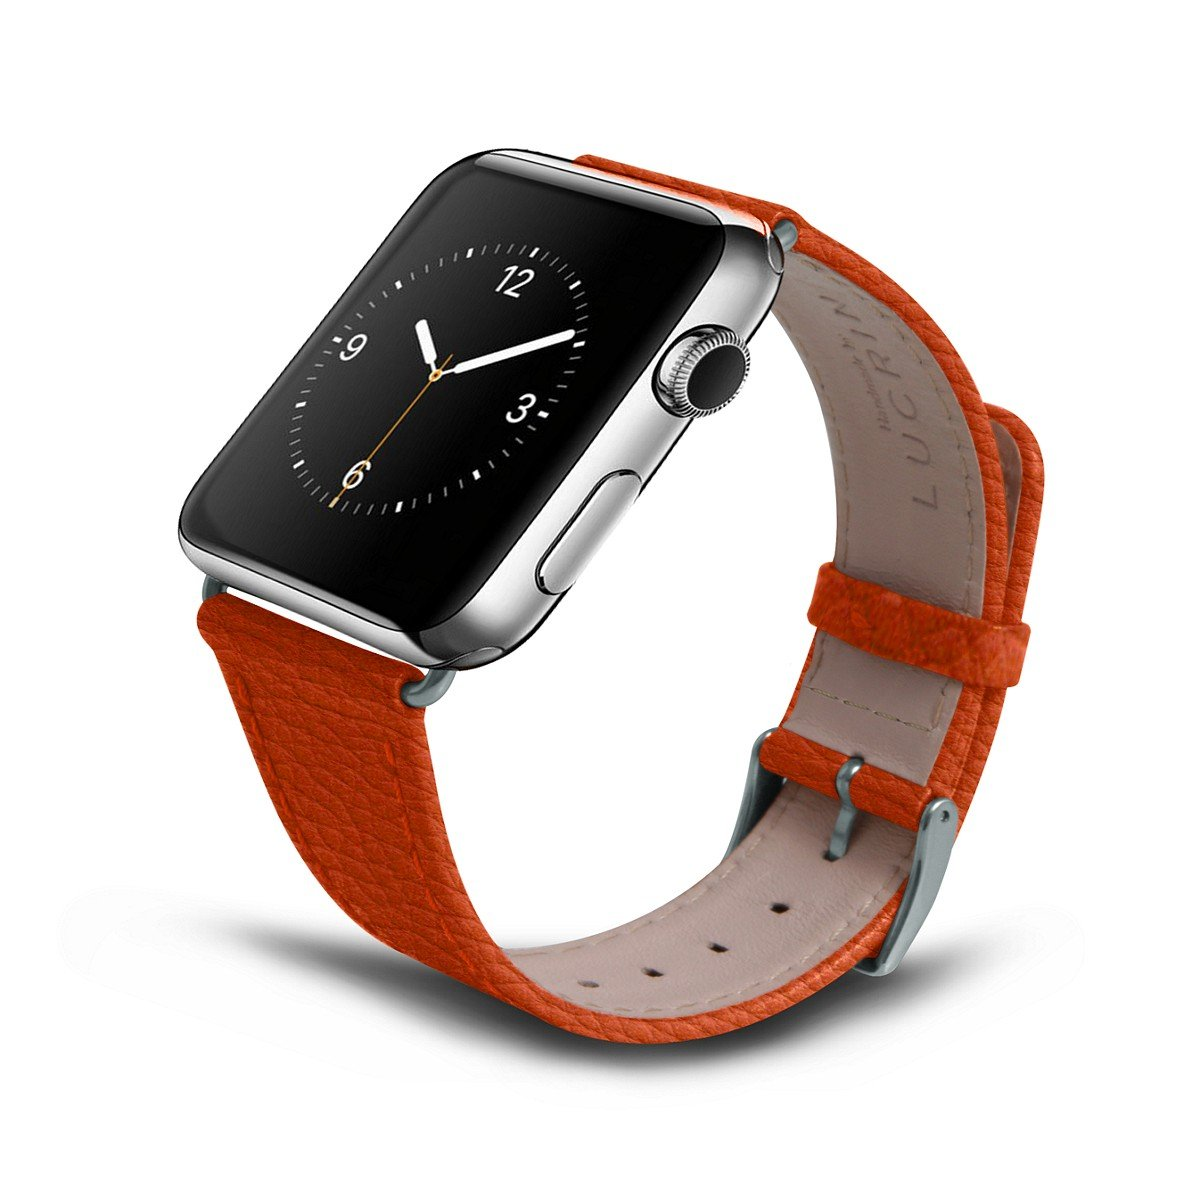 Lucrin - Apple Watch Band 42 mm - Classic - Orange - Granulated Leather by Lucrin (Image #5)